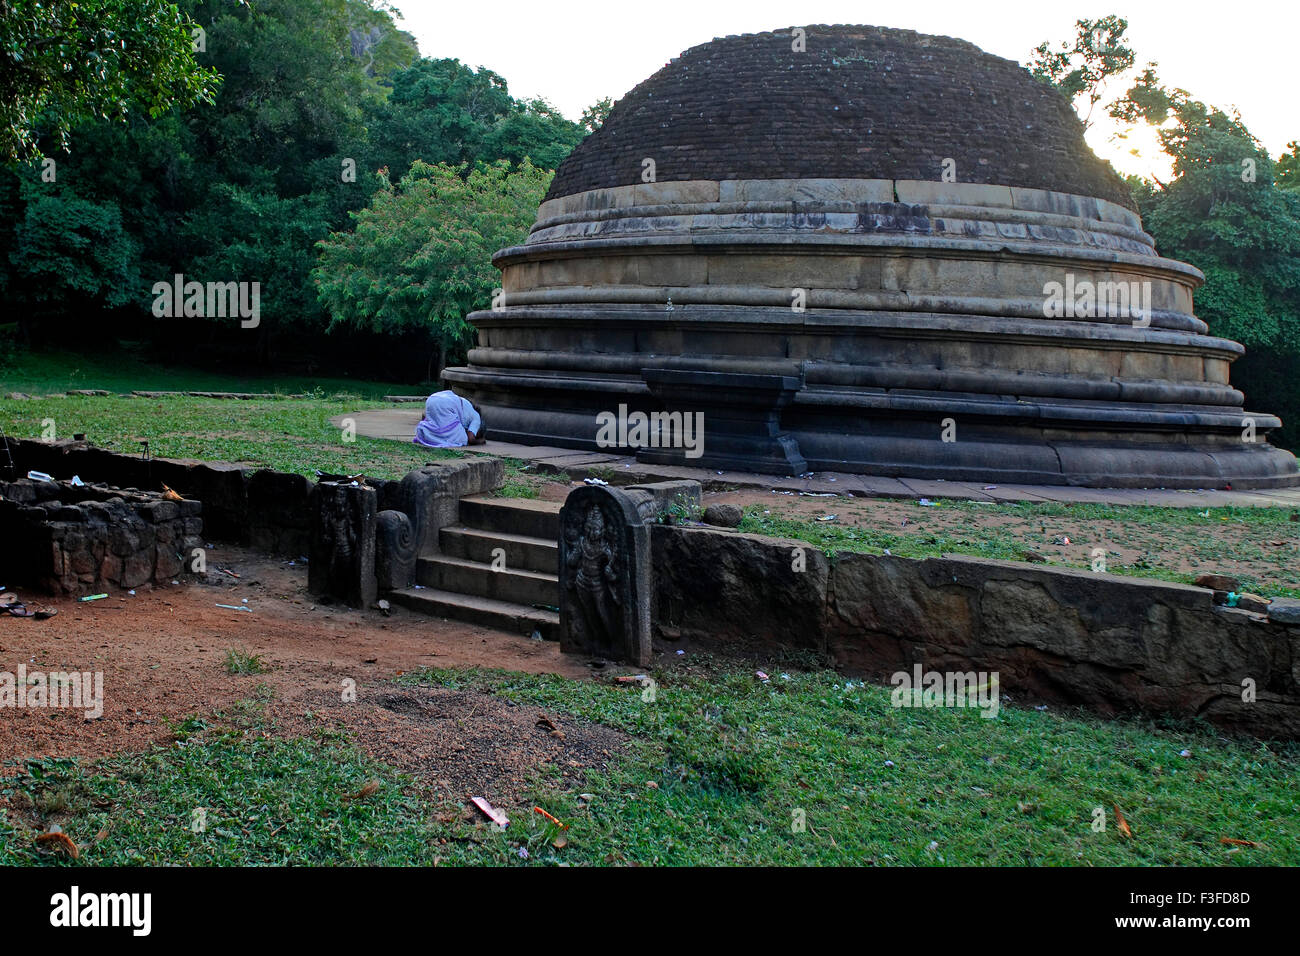 Mihintale 247 bc is regarded as the cradle of Buddhism located near Anuradhapura an ancient city ; Sri Lanka - Stock Image